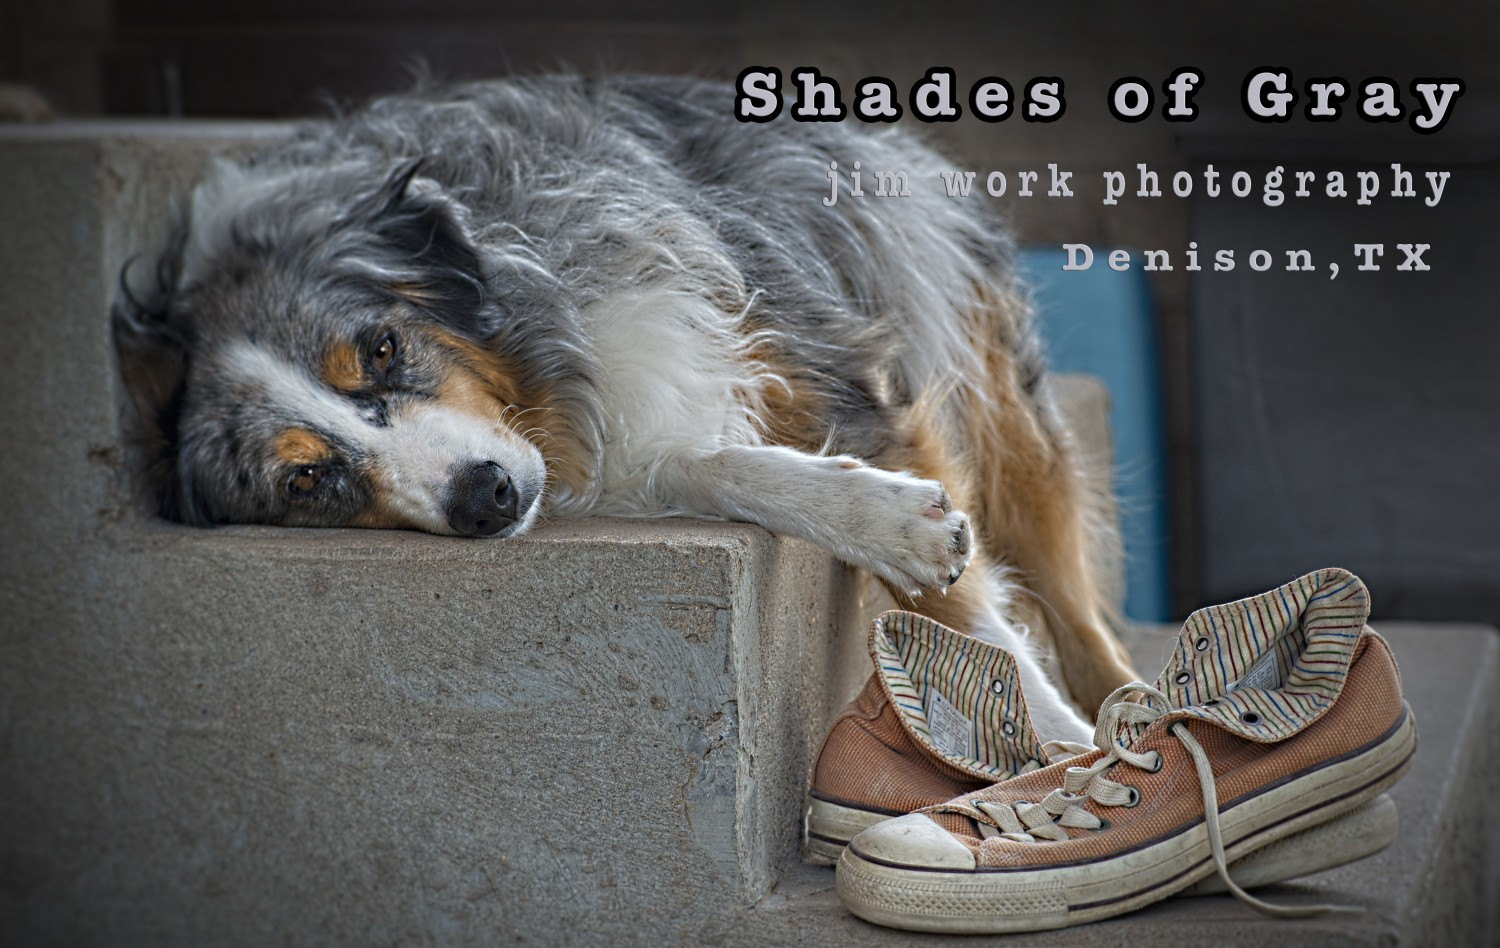 Shades of Gray – Denison TX